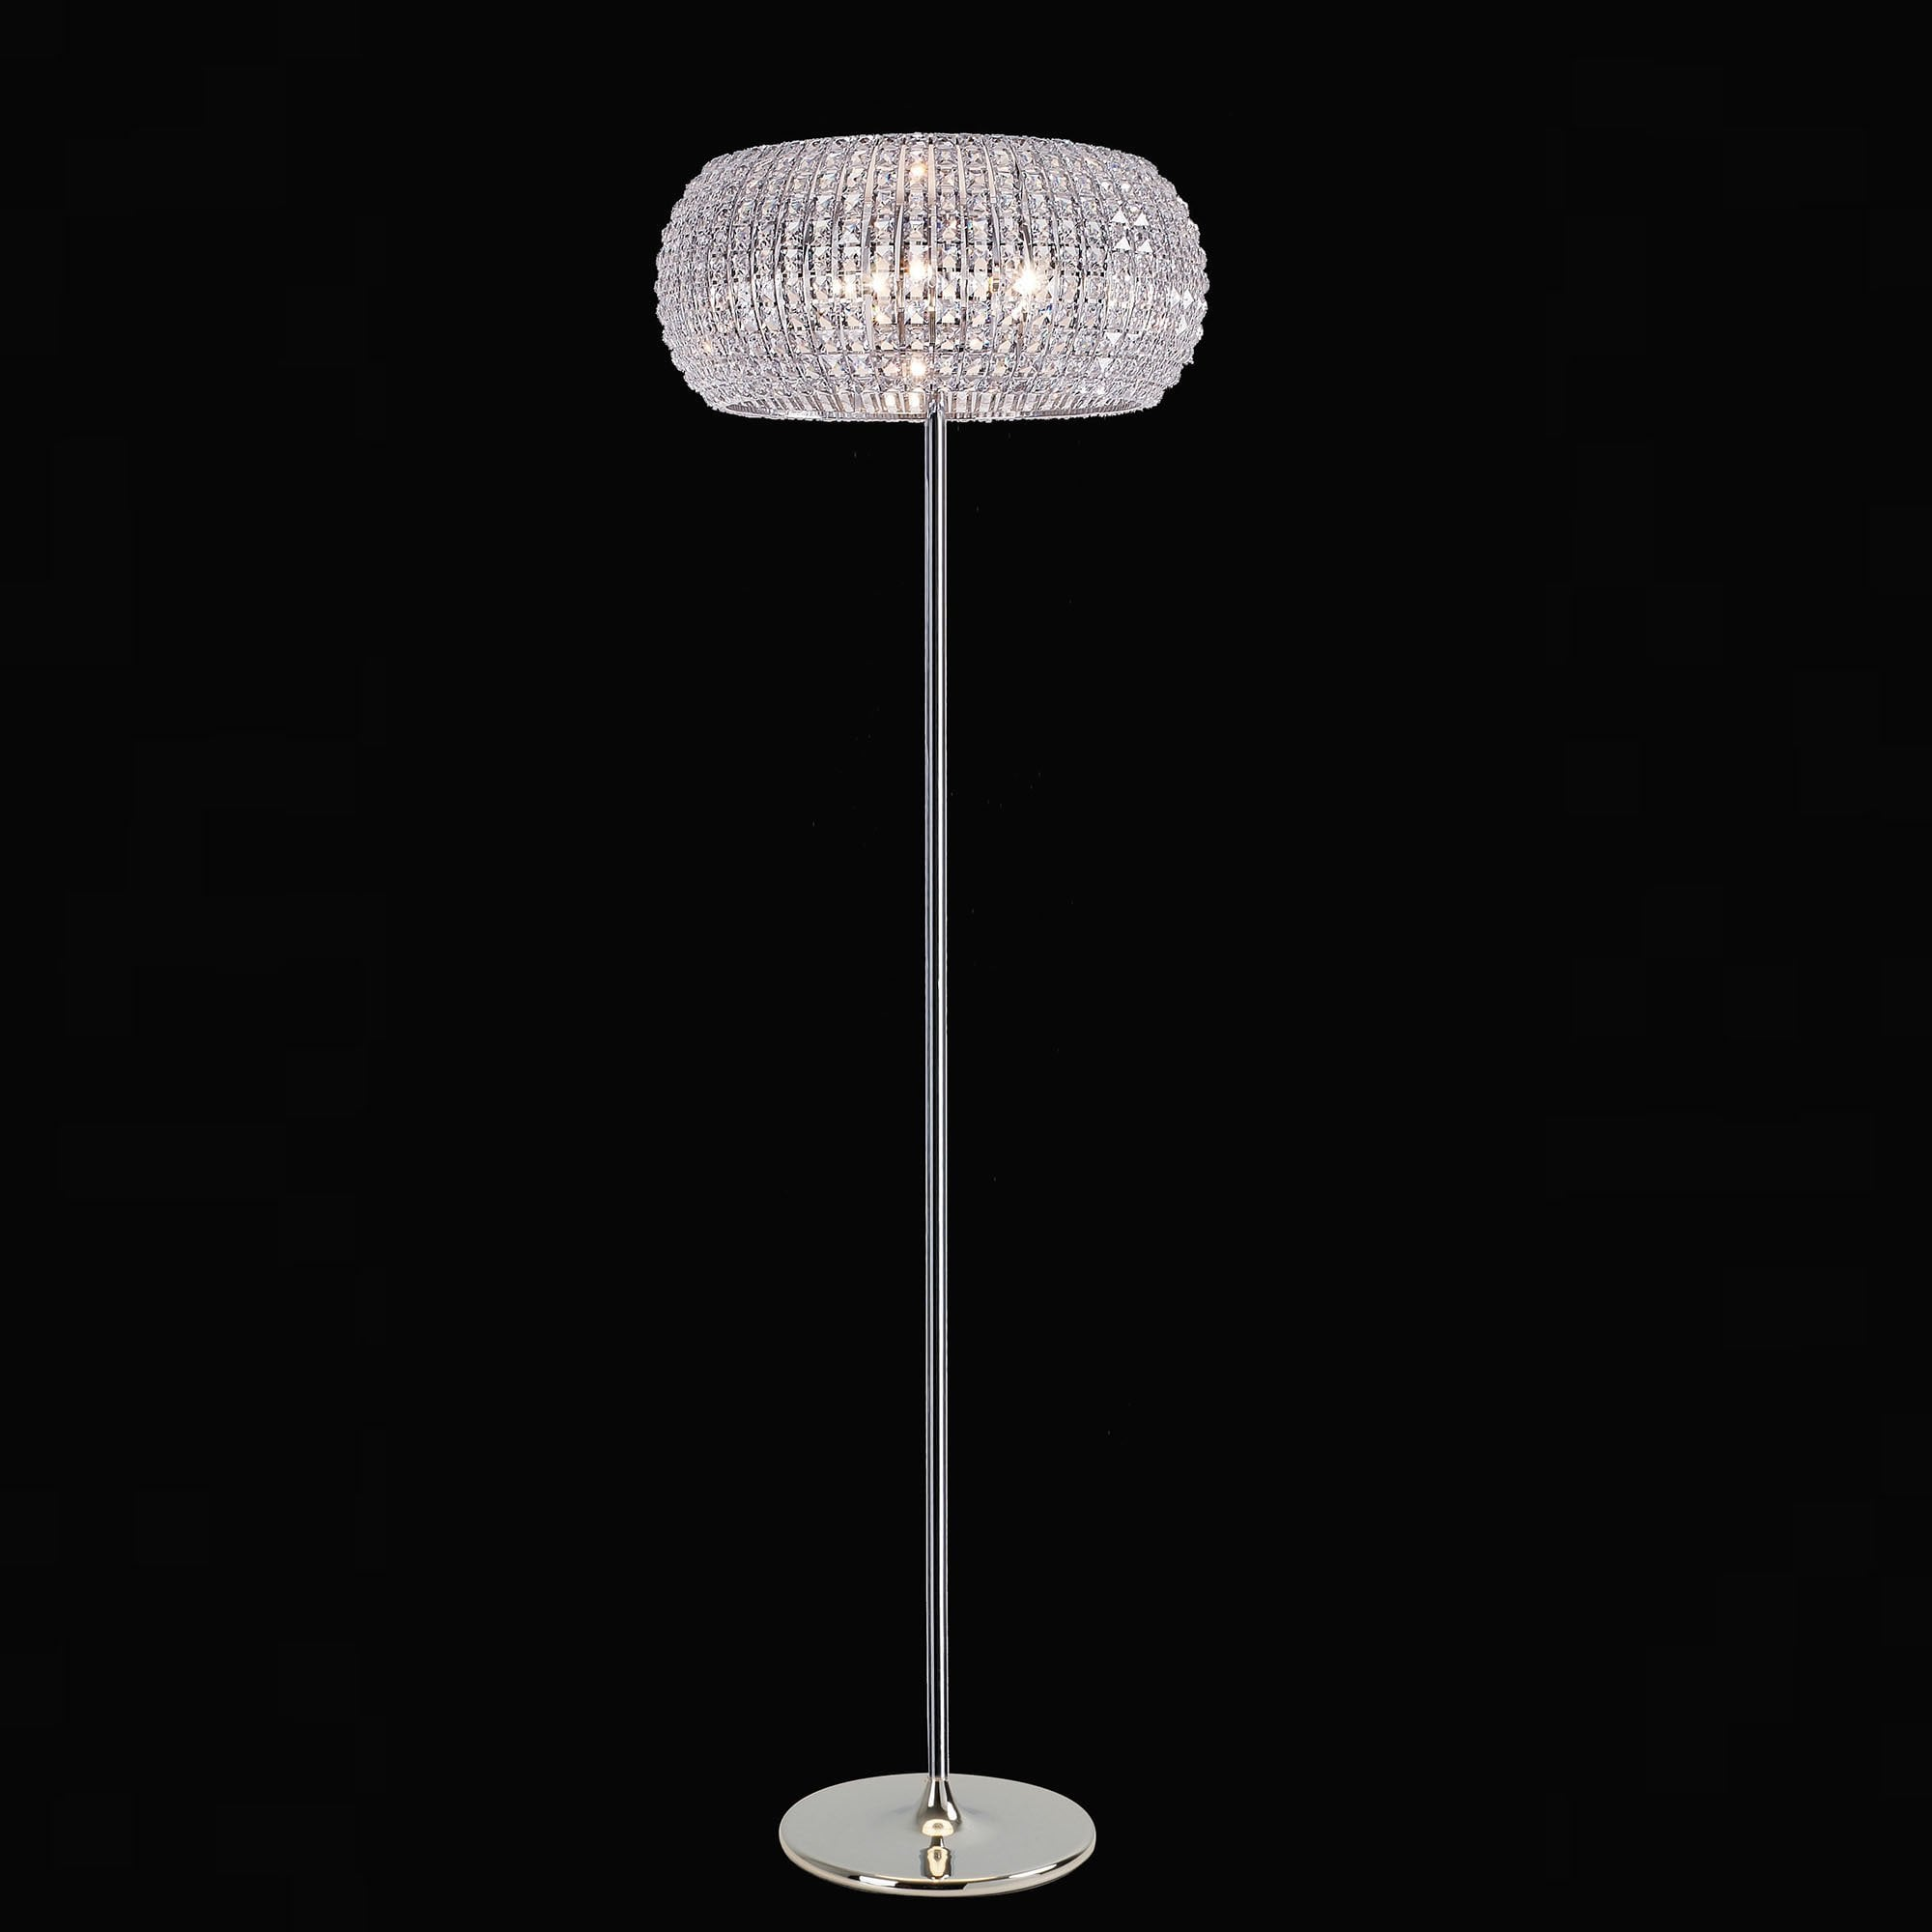 Impex Rome Chrome With Clear Crystal 6 Lt Floor Lamp at Leader Stores